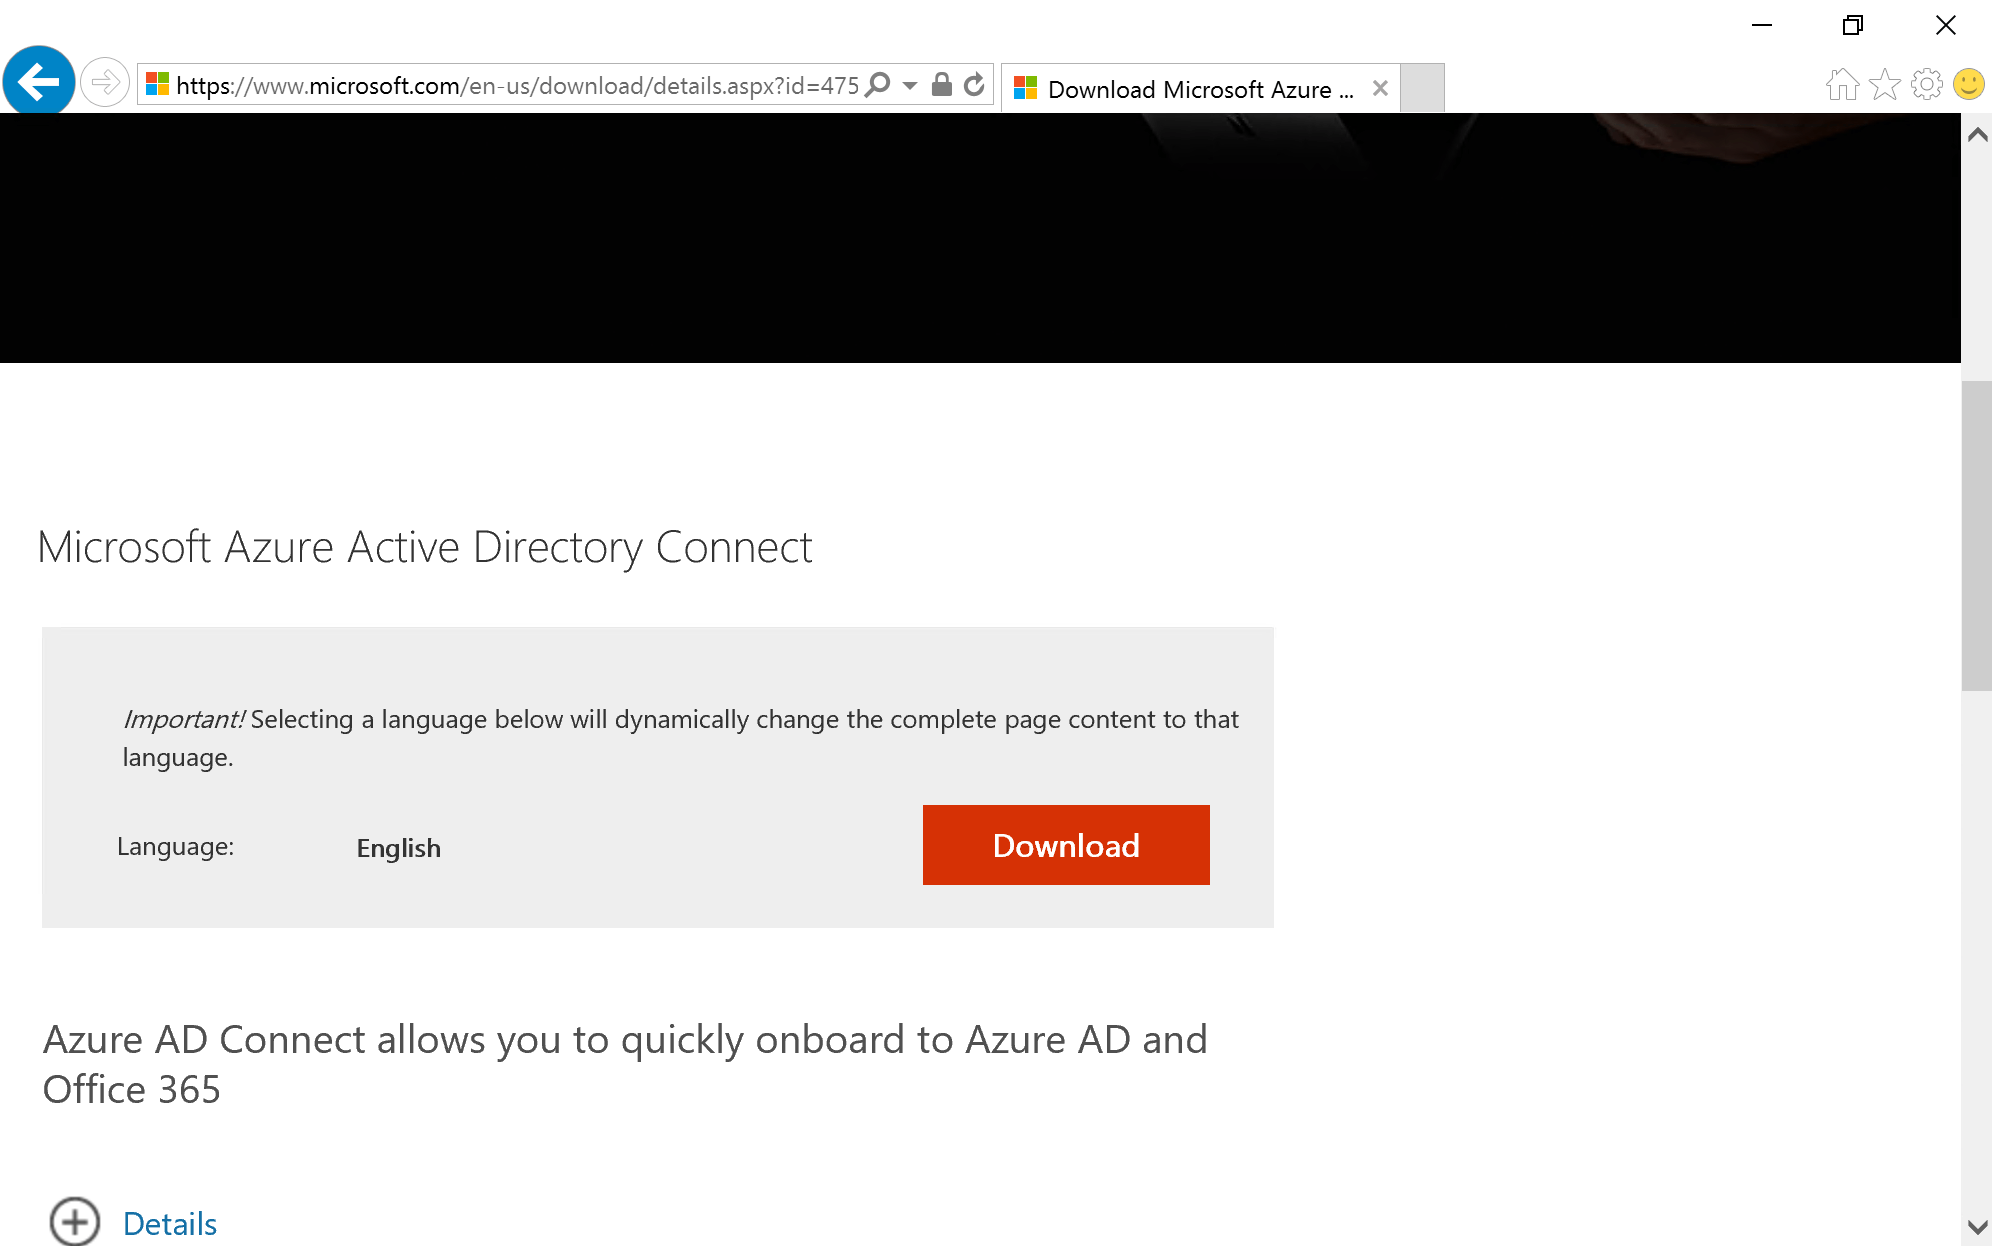 Download Azure AD Connect